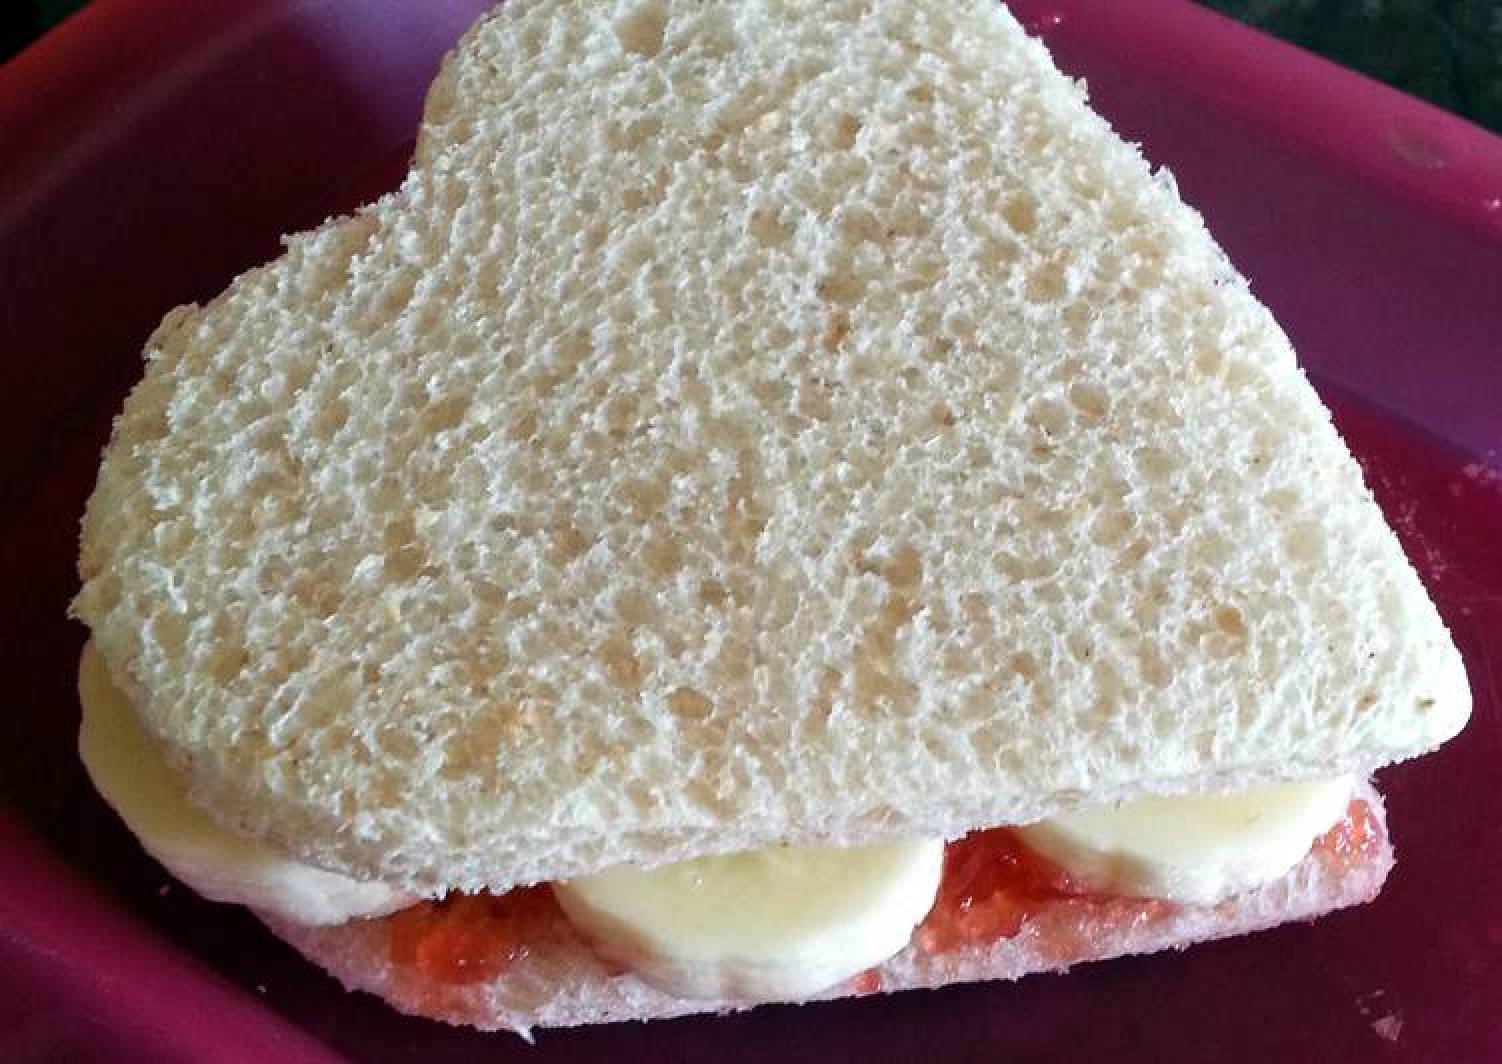 Banana and Jam Heart Sandwich